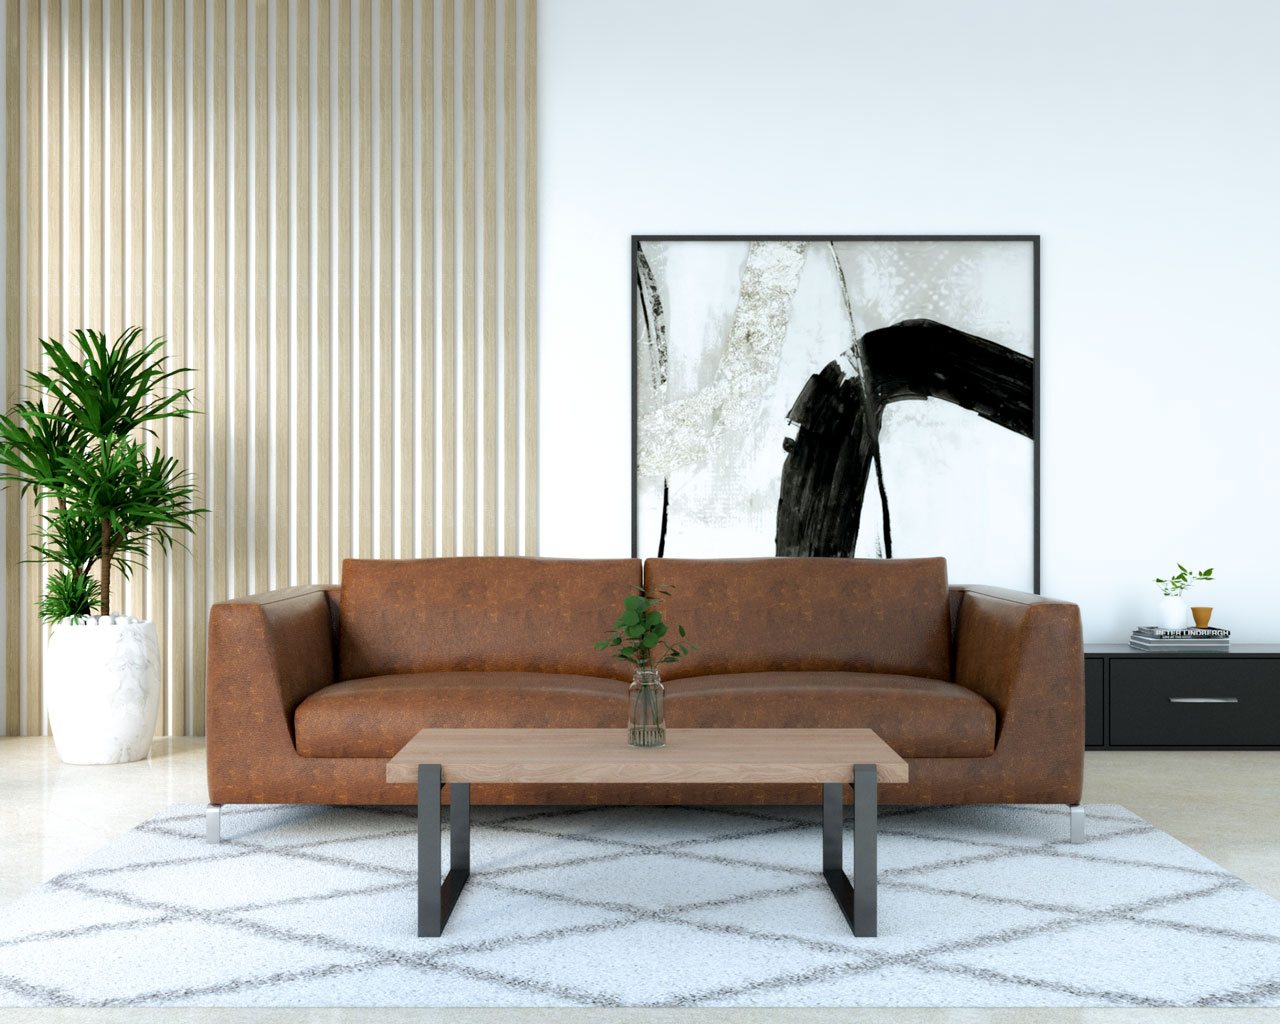 Rustic wood and iron table with brown leather couch